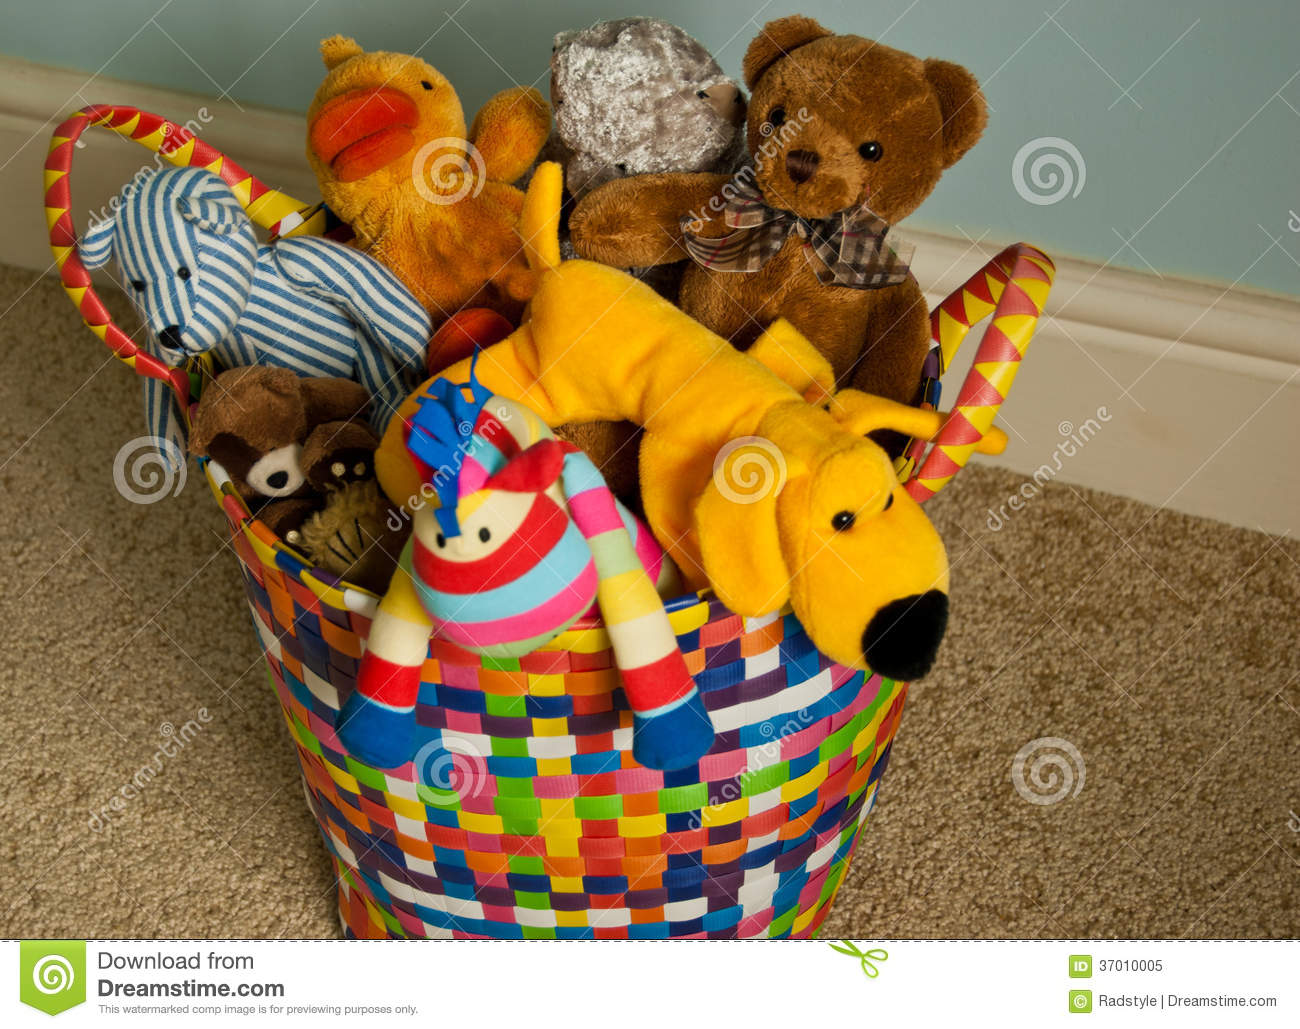 Room Filled With Soft Toys : Basket with plush animals on carpet stock image of